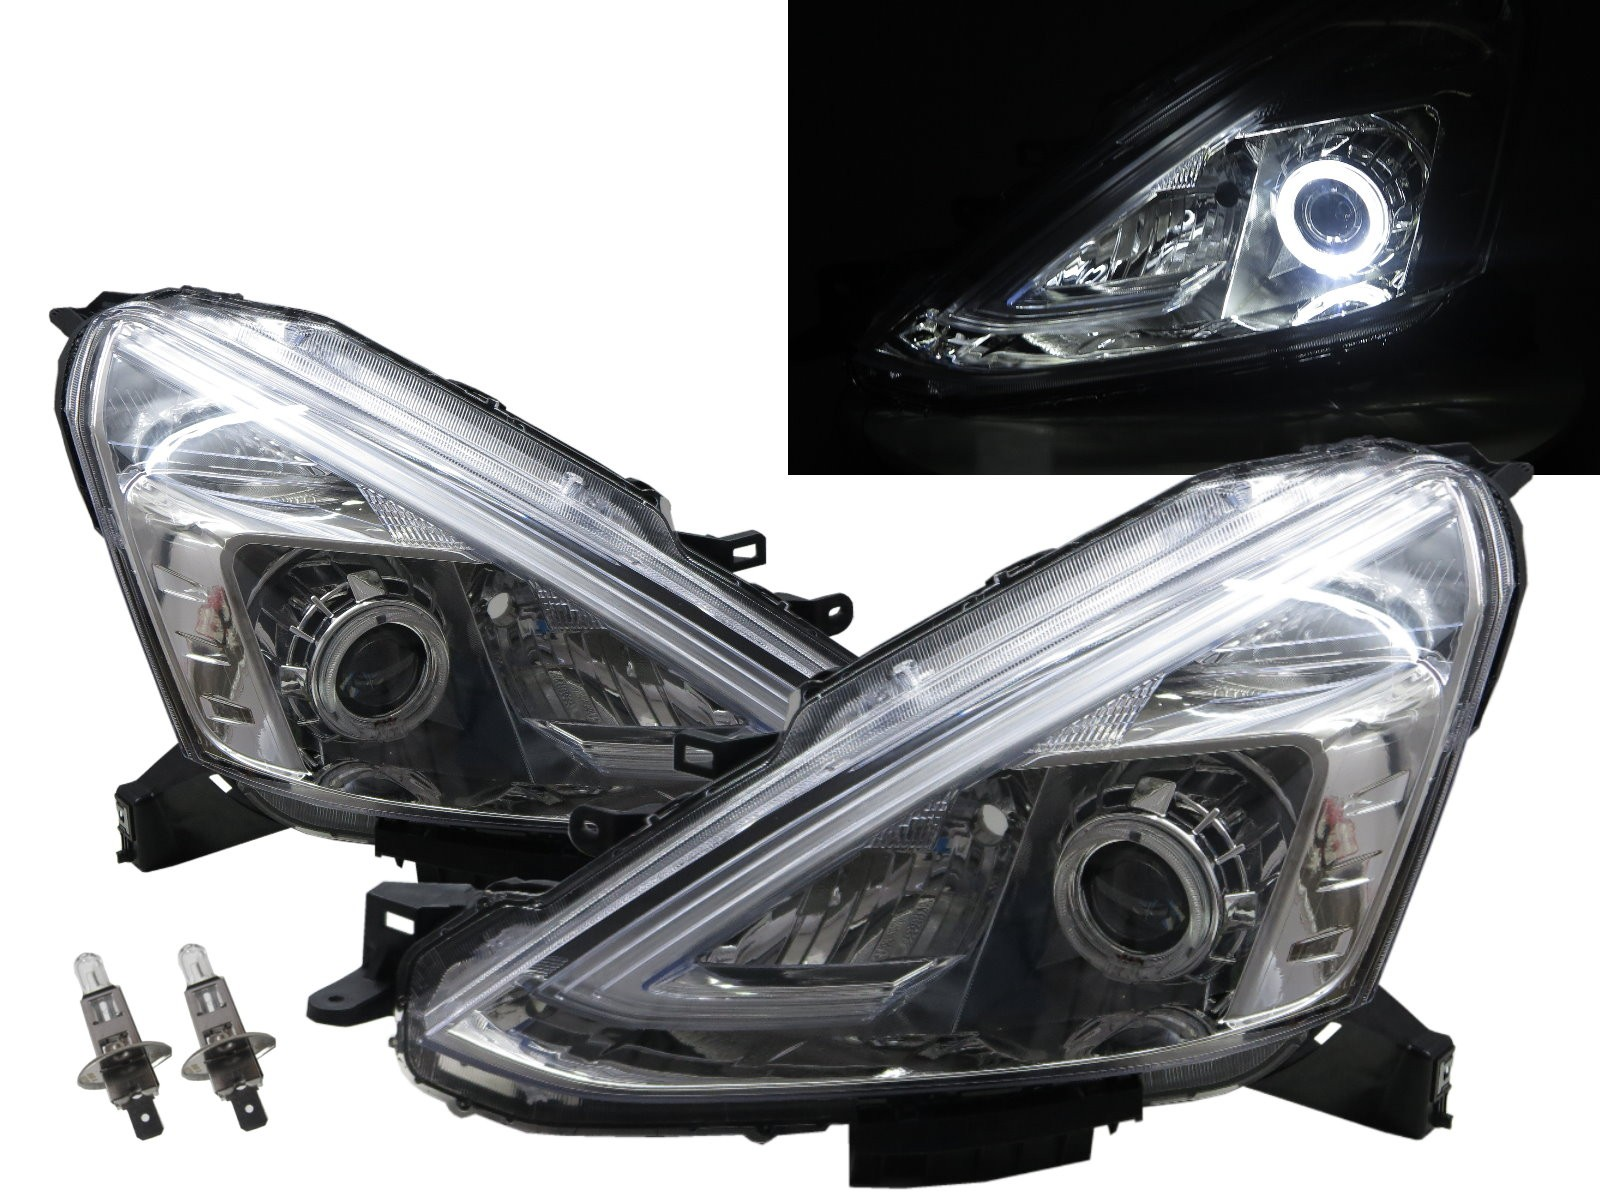 CrazyTheGod Grand Livina L11 Second generation 2013-Present MPV 5D Guide LED Angel-Eye Projector Headlight Headlamp W/ Motor Chrome for NISSAN LHD